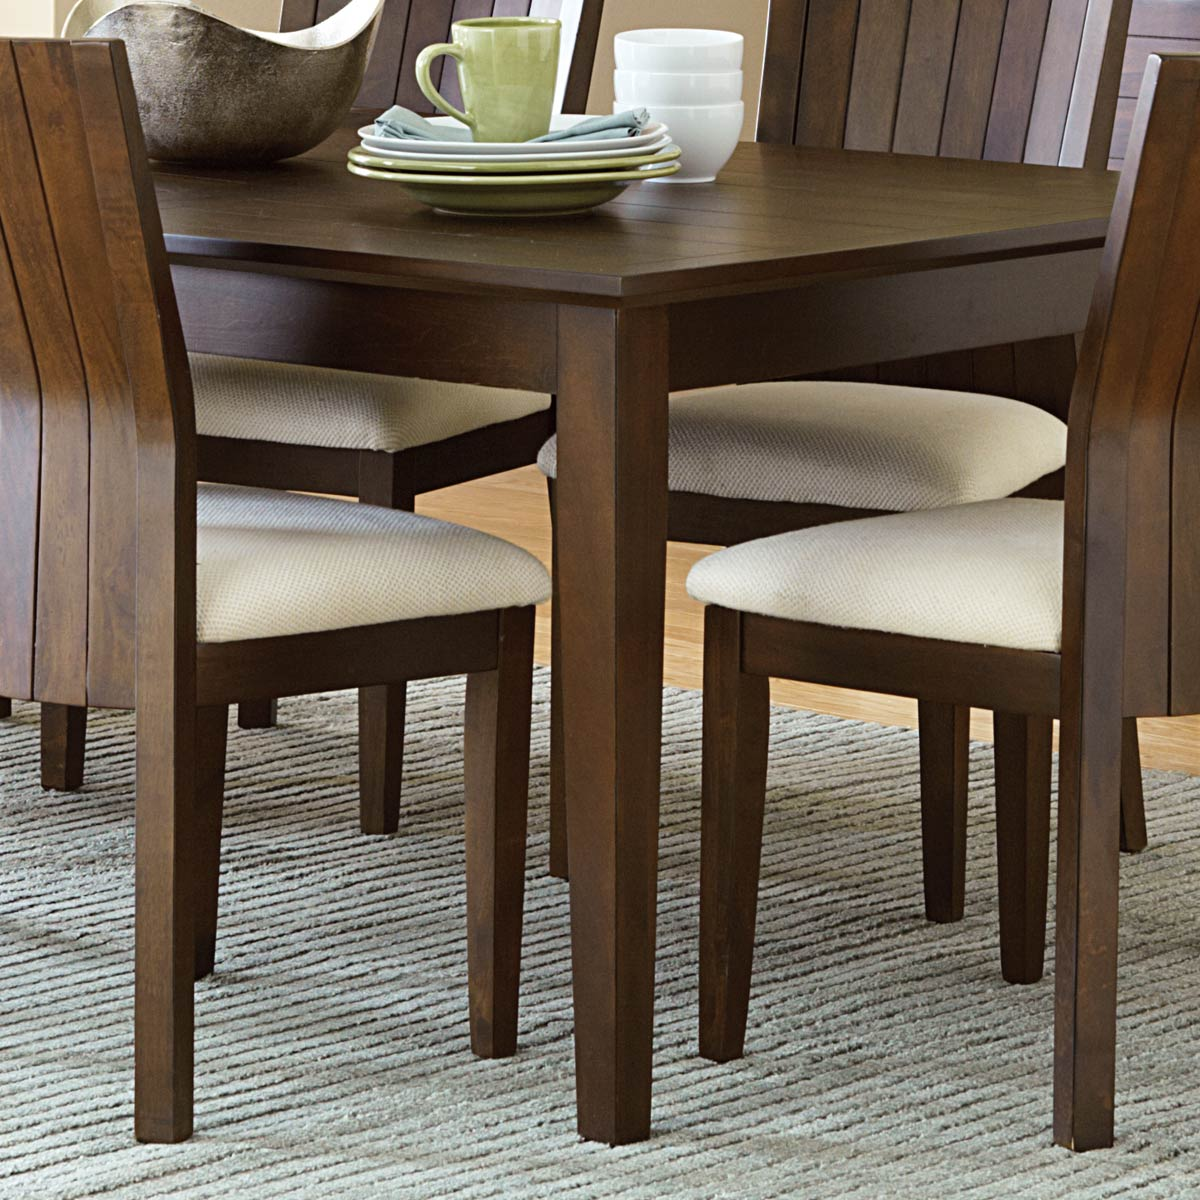 "Harlow Wood Dining Table - 18"" Extension Leaf, Tobacco Finish - SSC-HO500T"